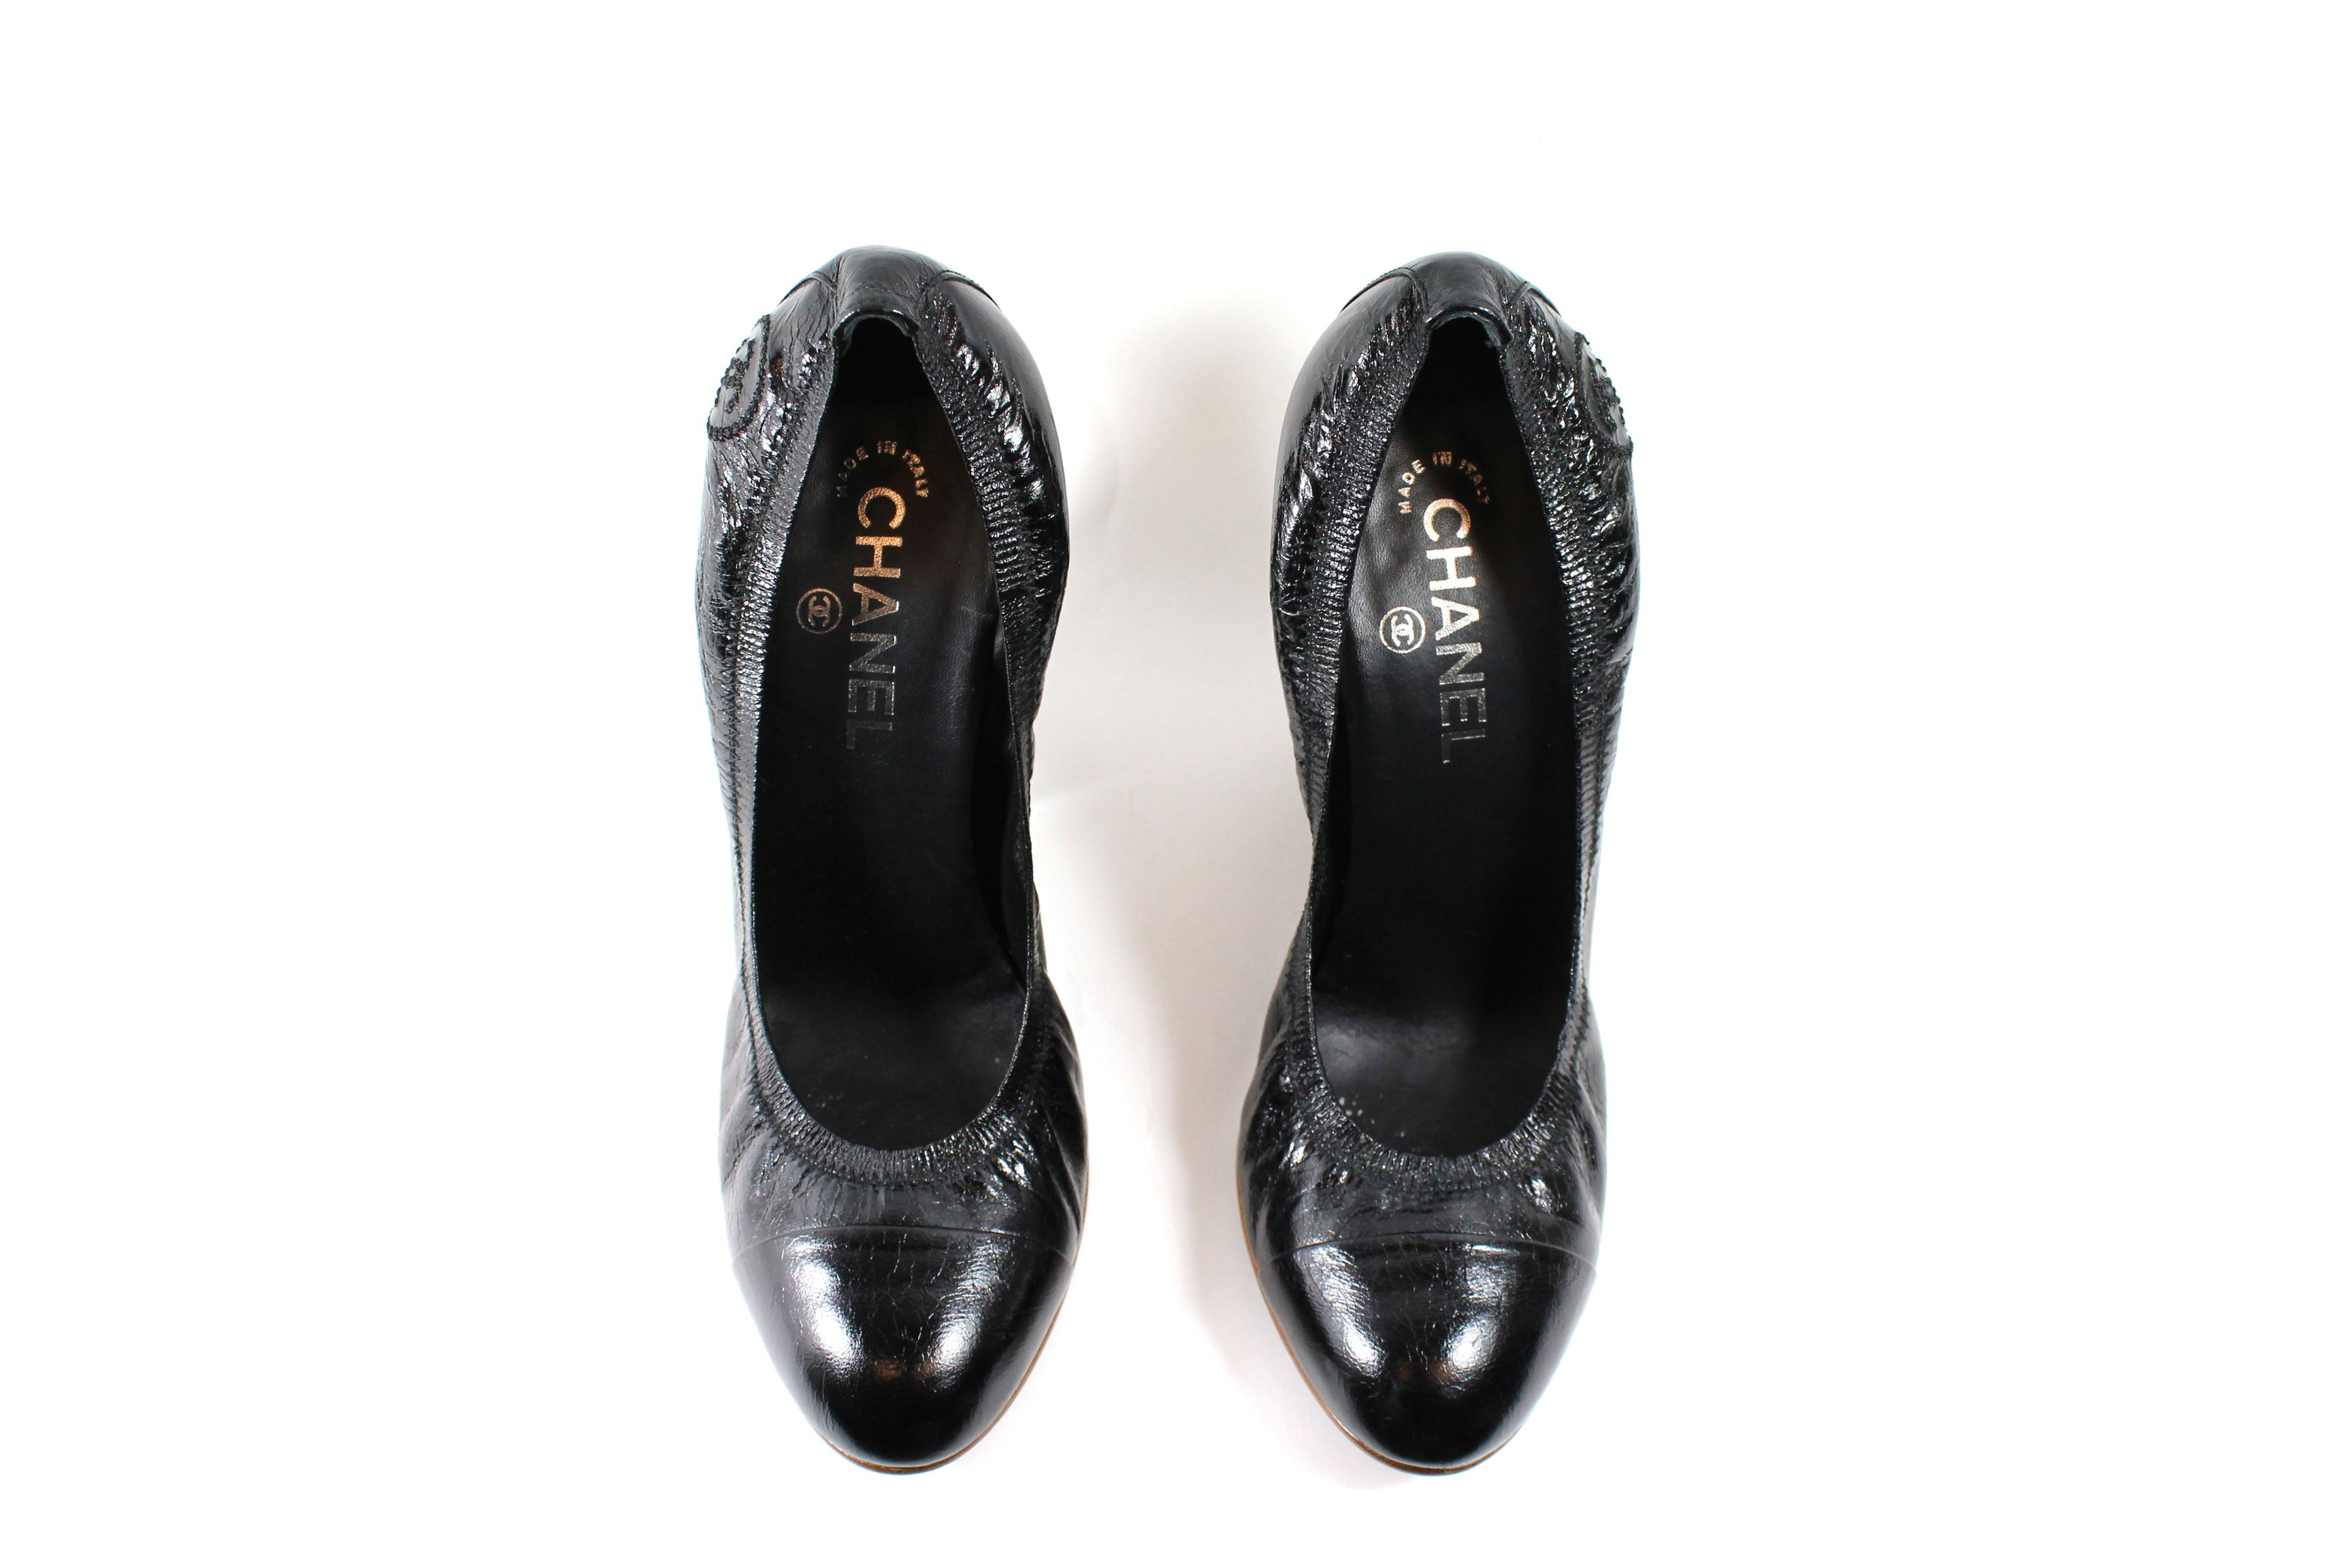 Chanel Black Crinkled Patent Leather Elastic Pumps - Size 41